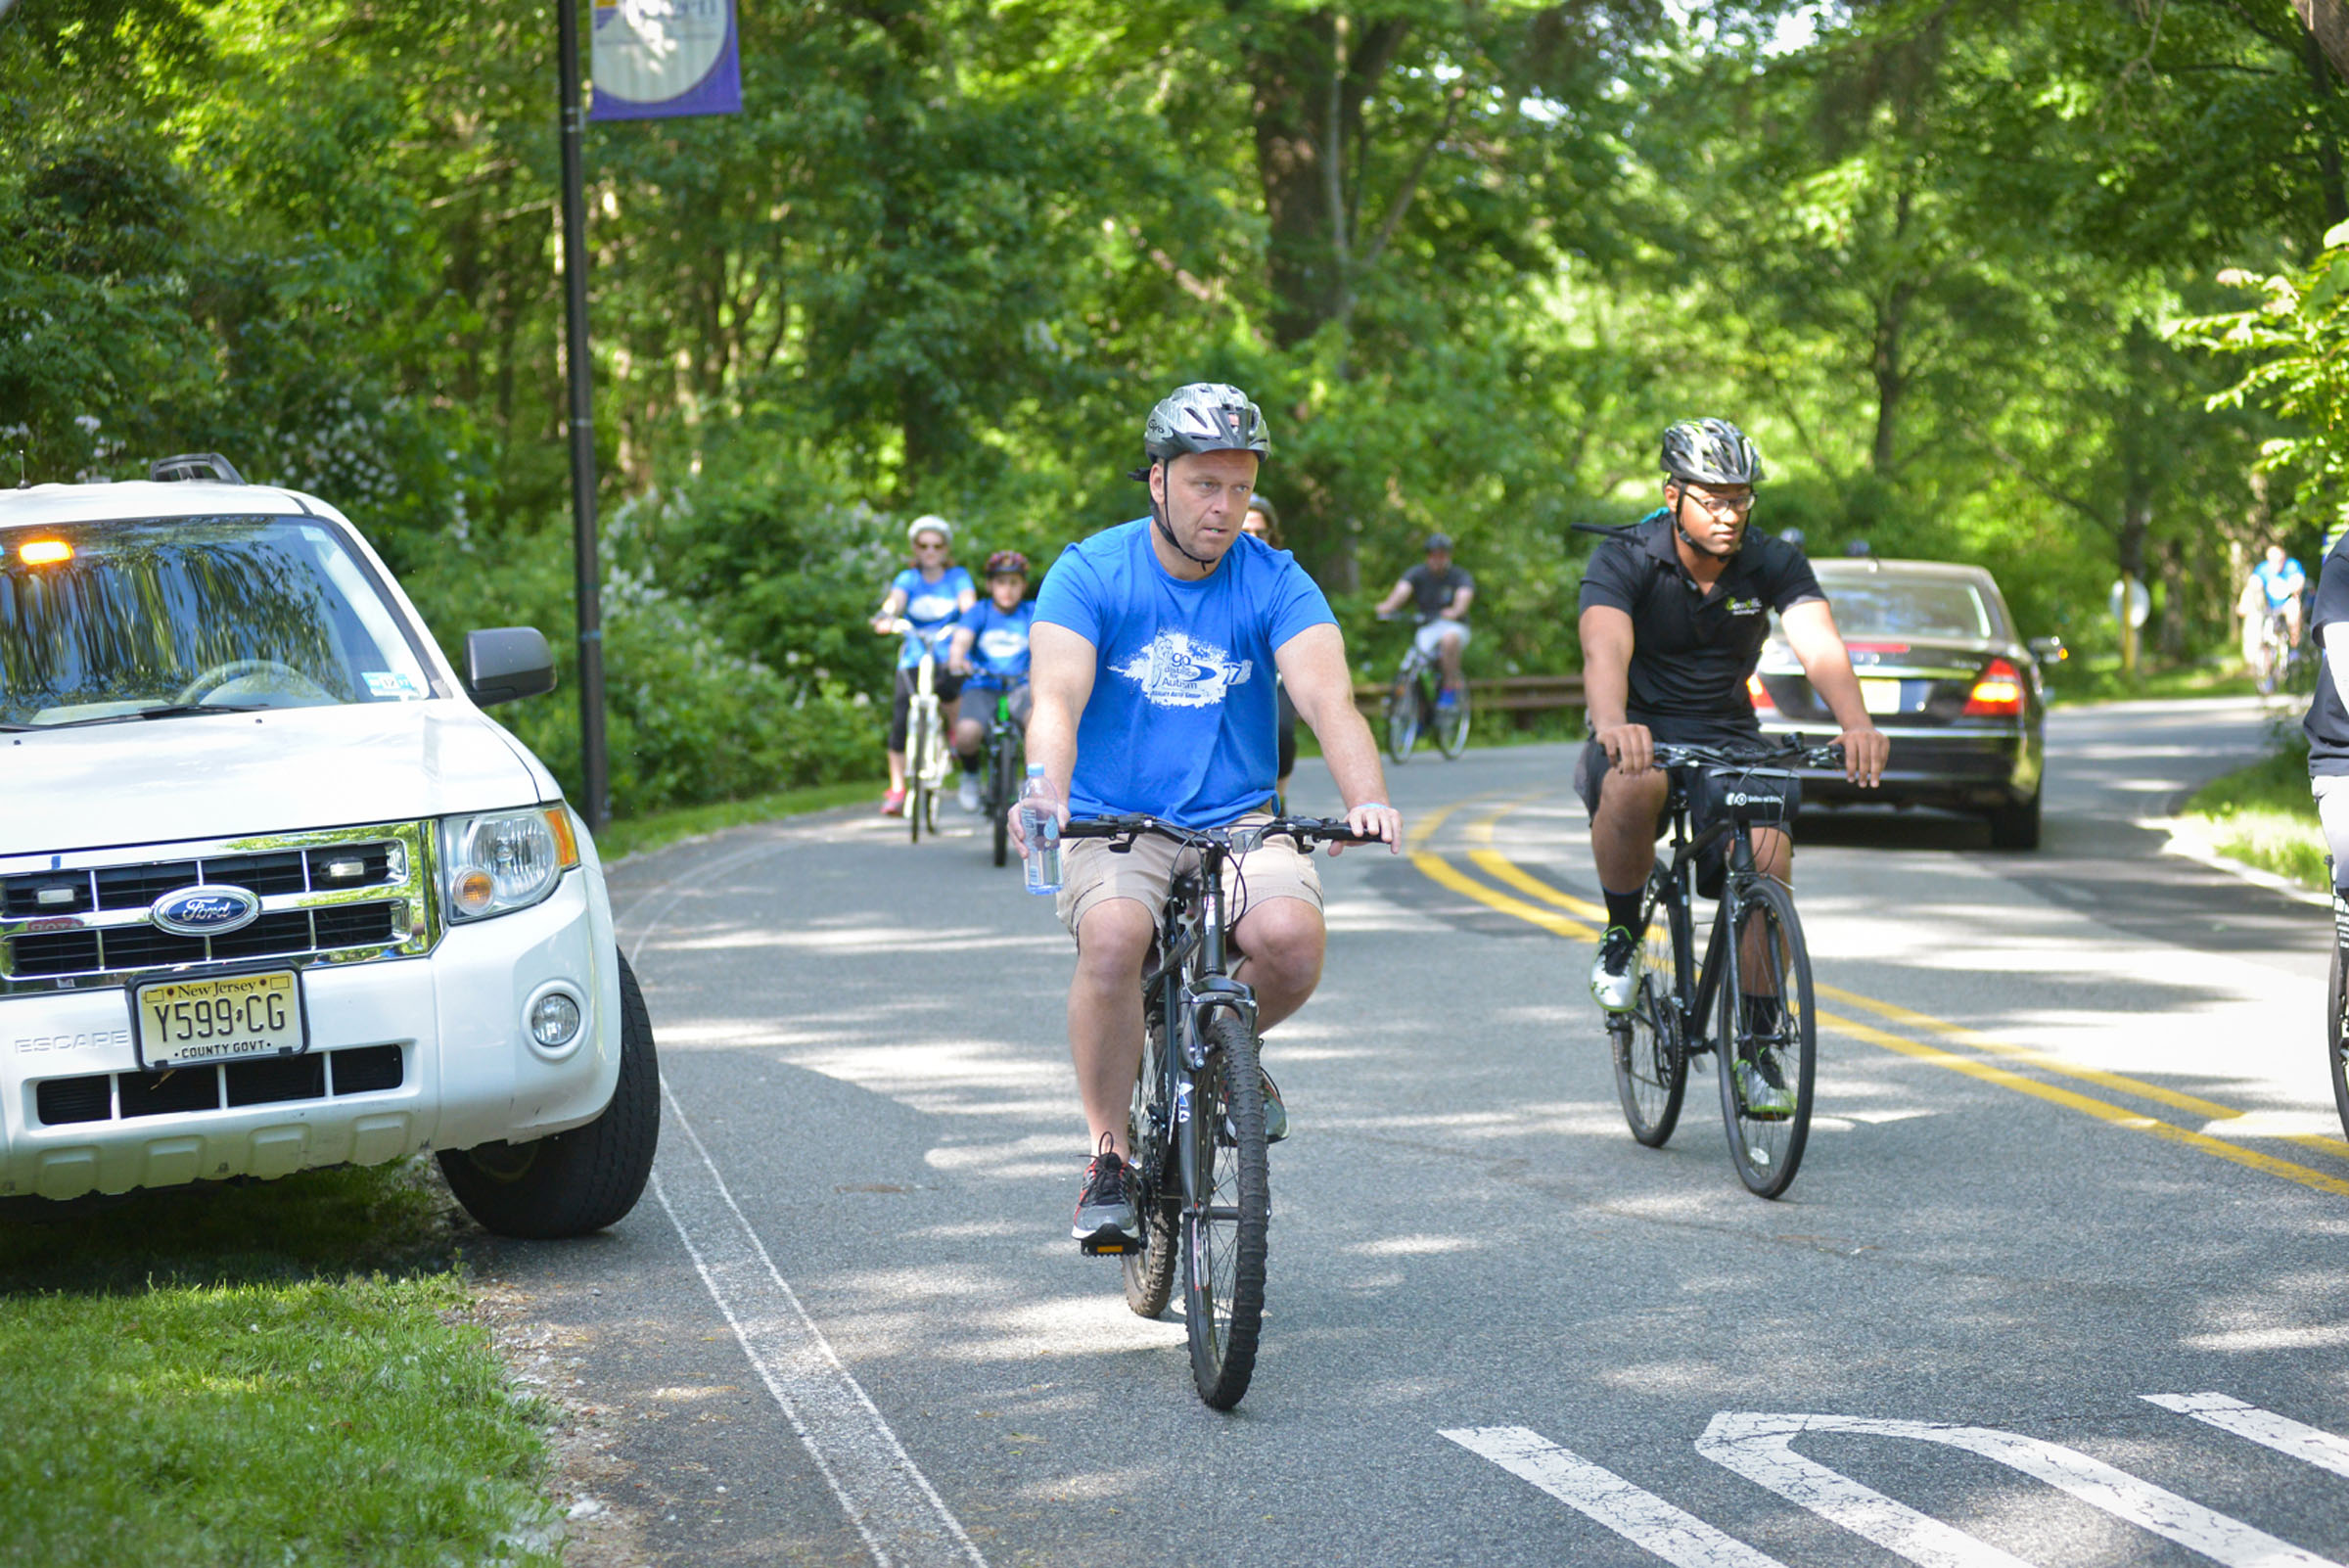 2017-06-04 GTD4A Charity Bike Ride - BCC - Paramus NJ-2021.jpg